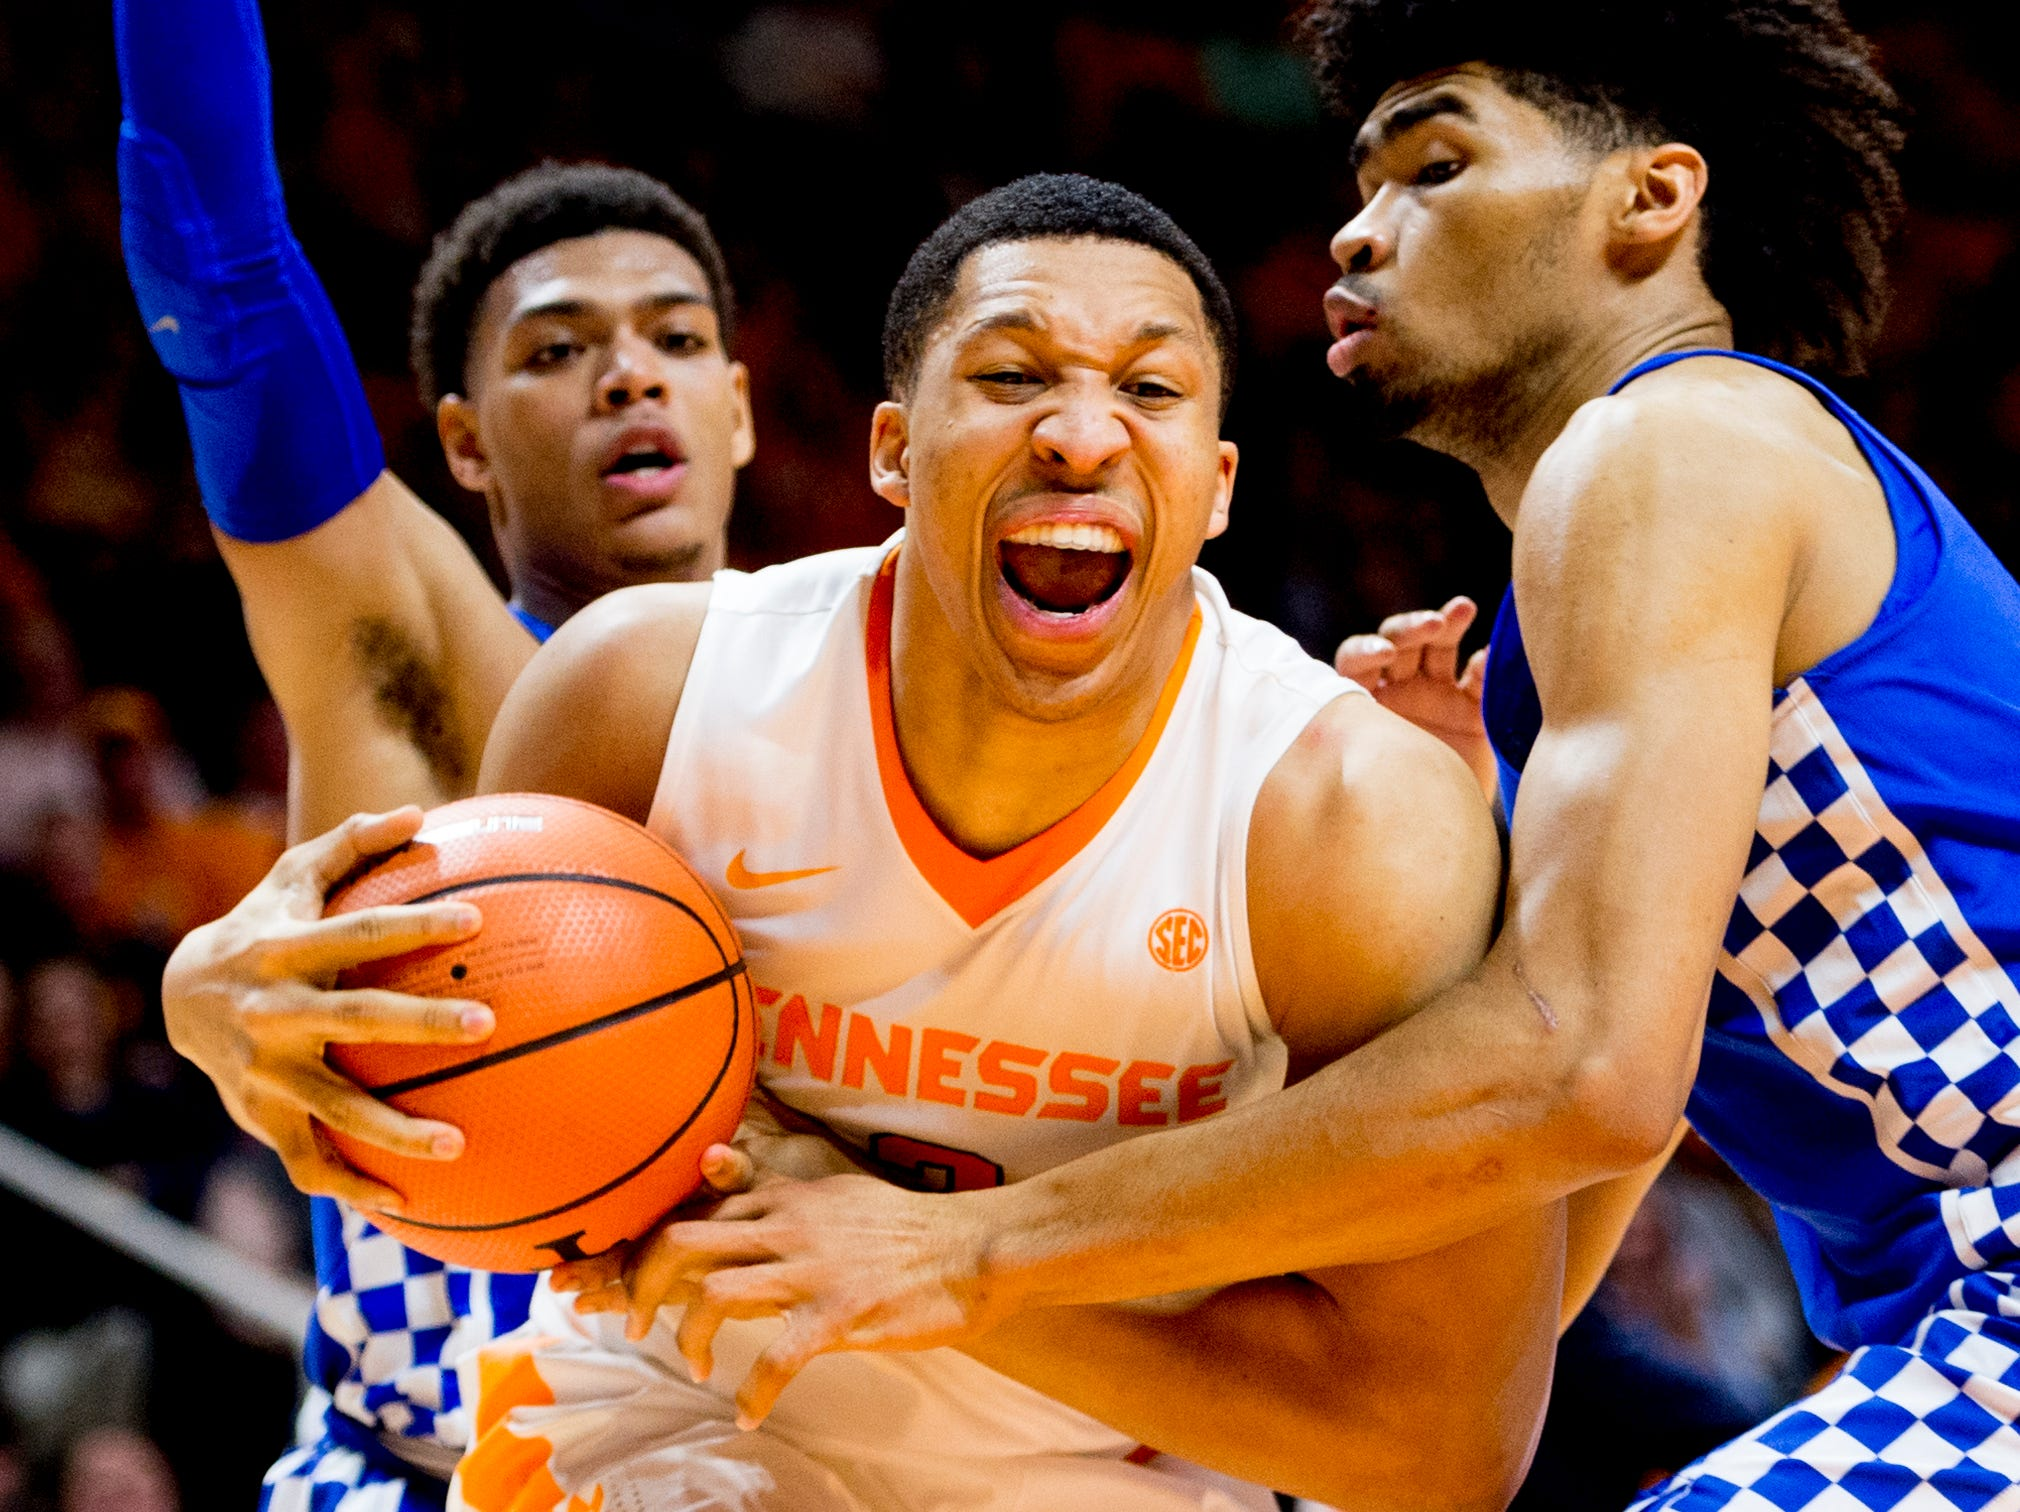 Tennessee forward Grant Williams (2) drives the ball during a game between Tennessee and Kentucky at Thompson-Boling Arena in Knoxville, Tennessee on Saturday, January 6, 2018.